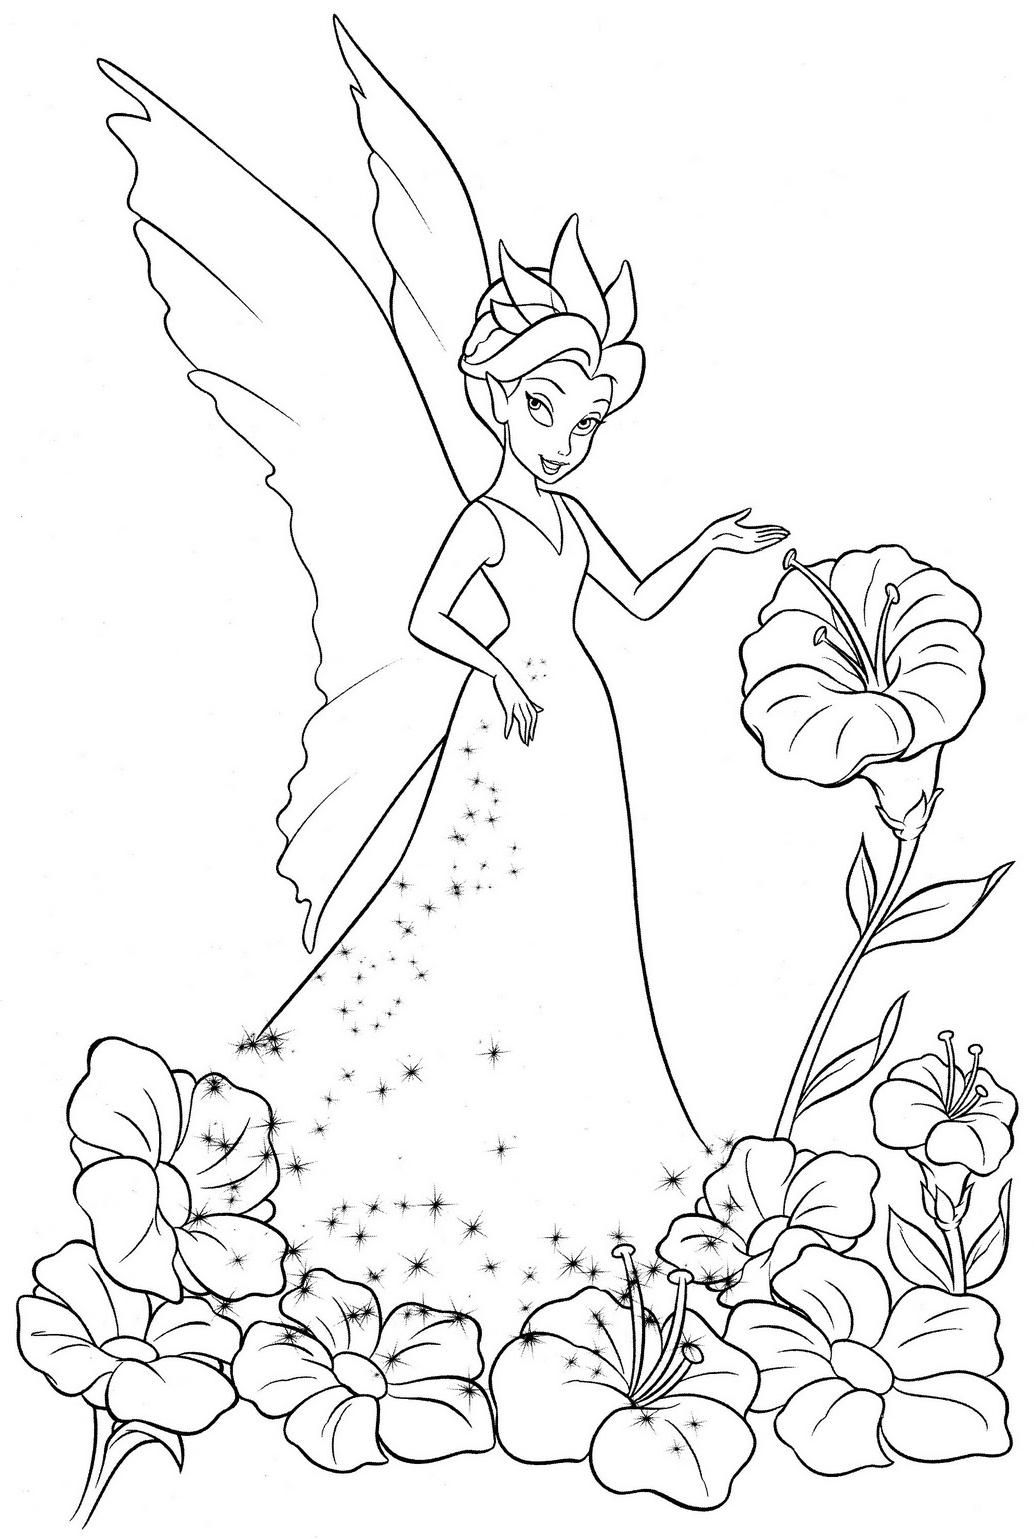 Ausmalbilder Tinkerbell : Coloring Pages Of Tinkerbell And Friends Coloring Pages